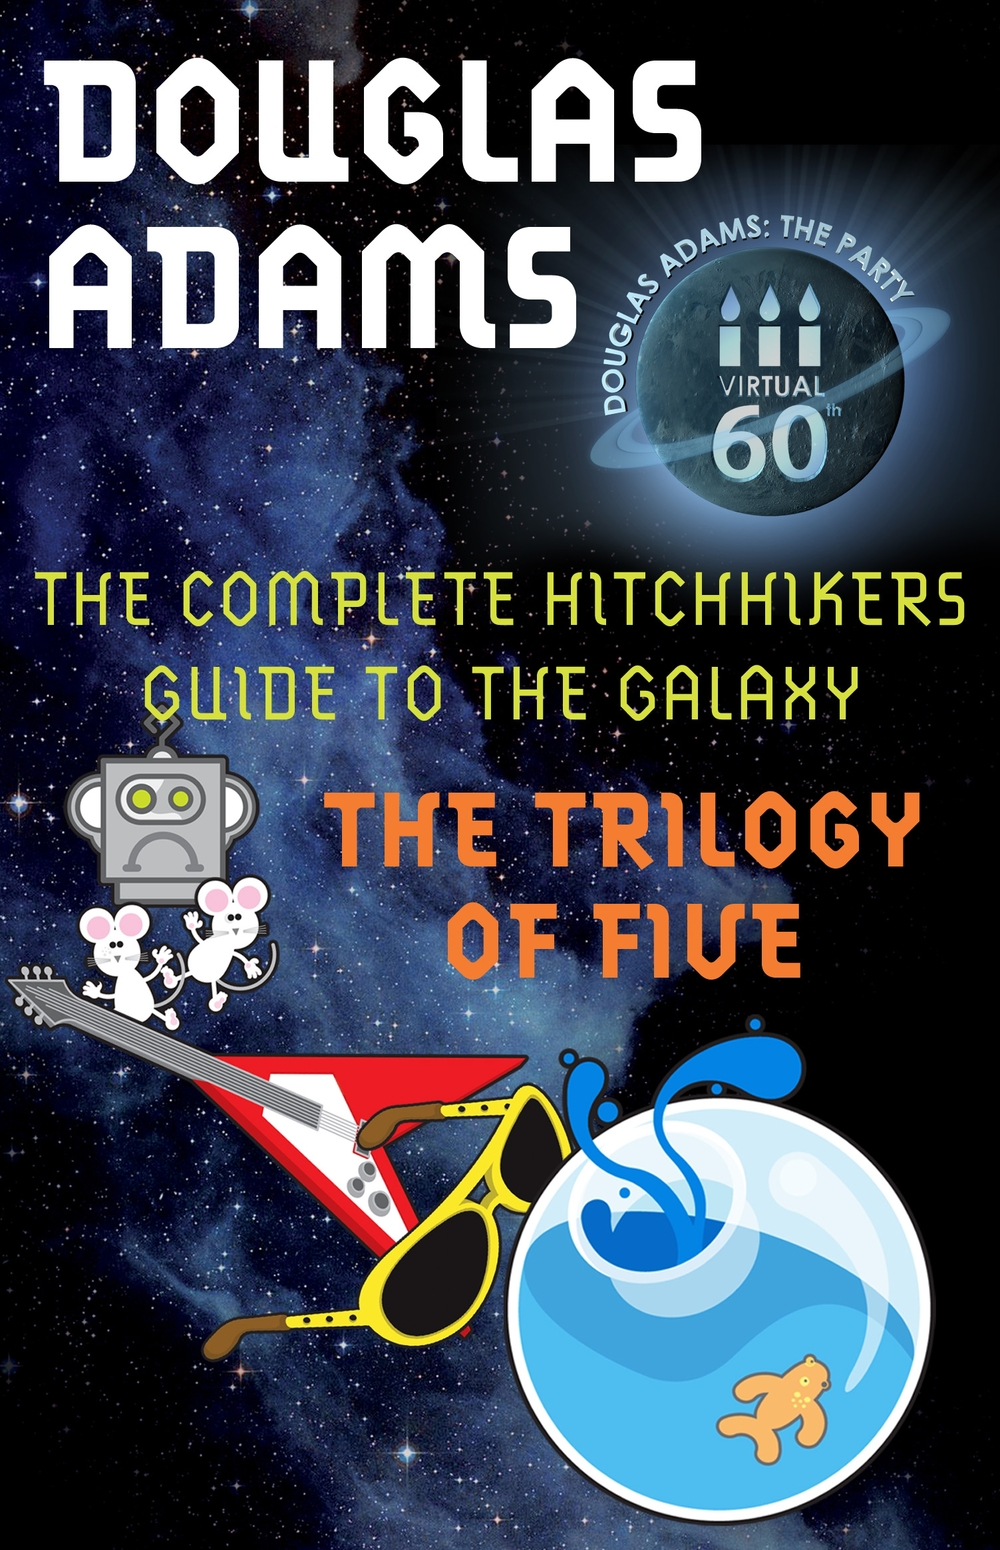 Hitchhikers ebook omnibus